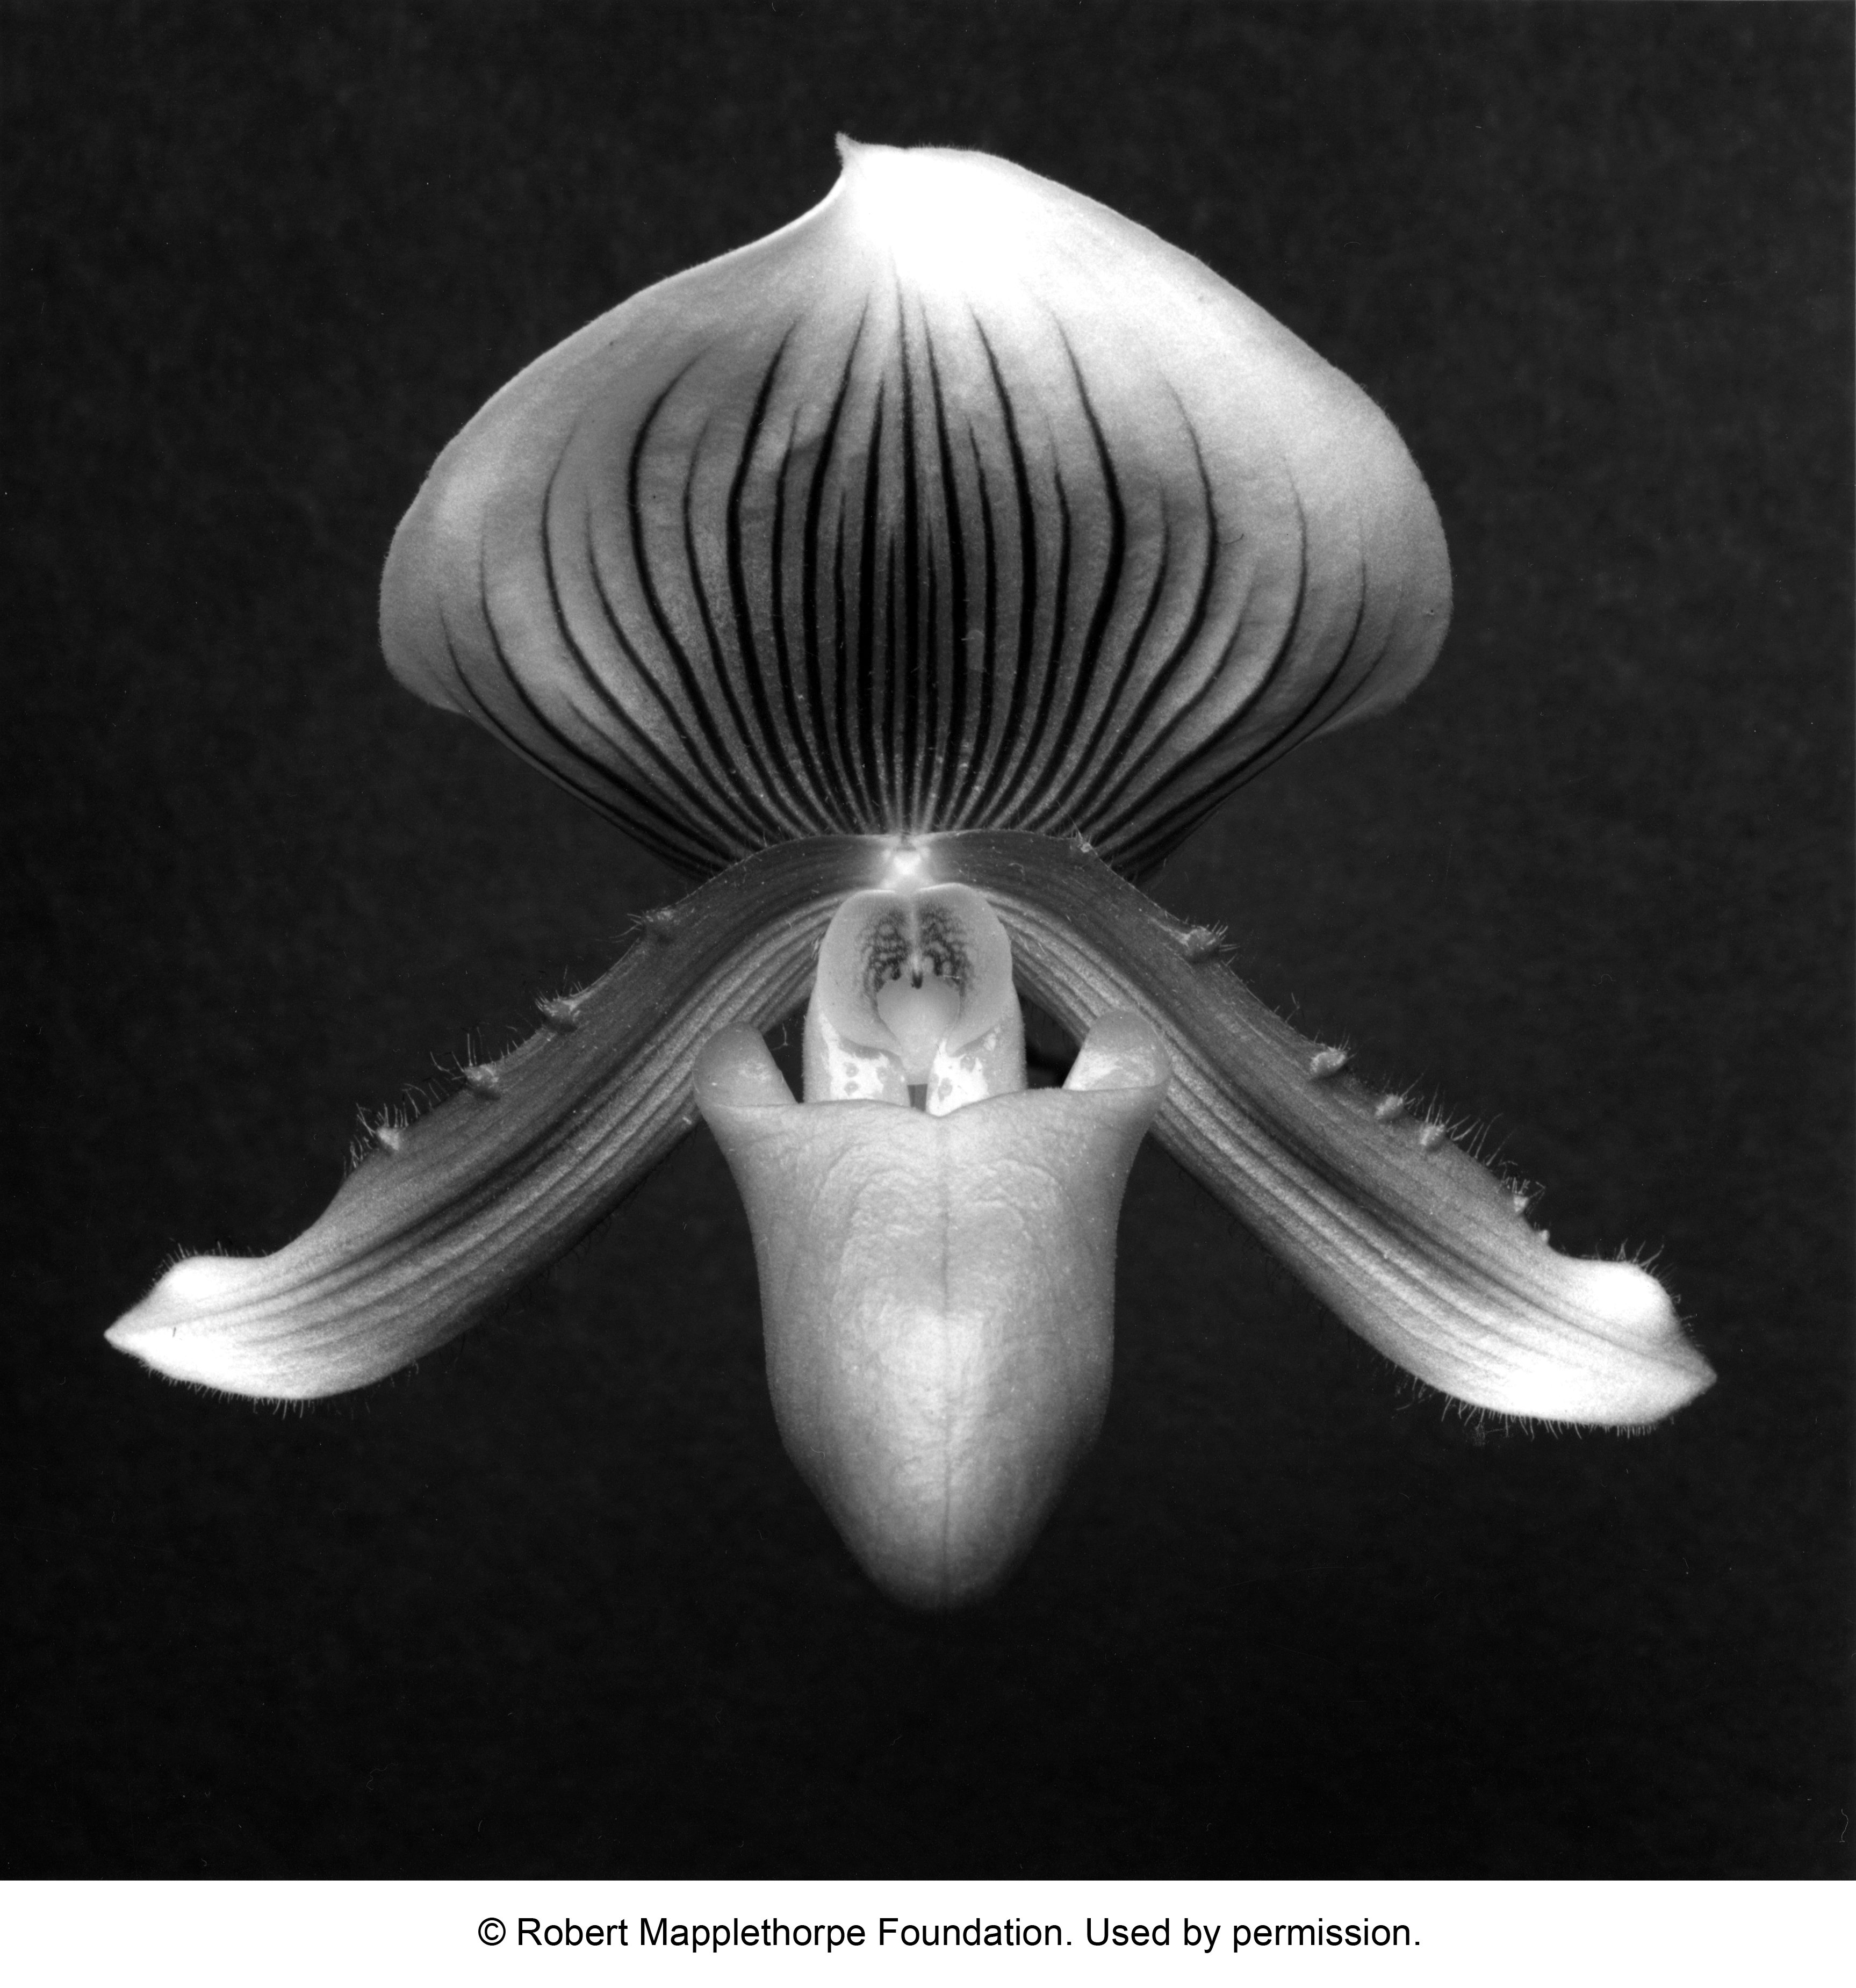 A Robert Mapplethorpe photo of an orchid from 1988